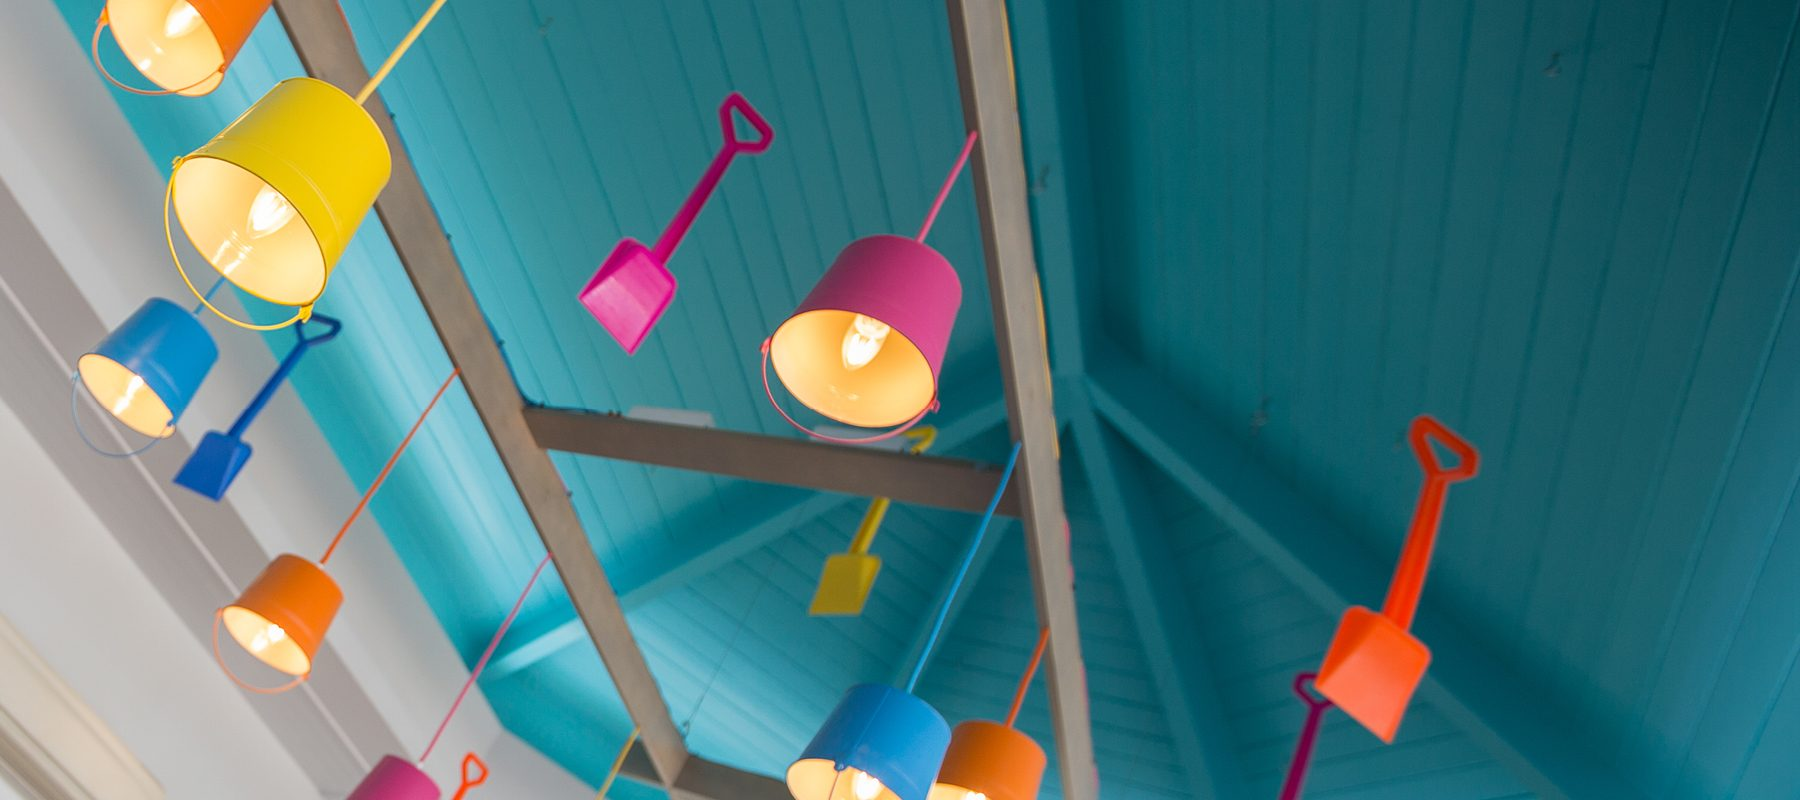 seaside lighting interior design holiday park reception